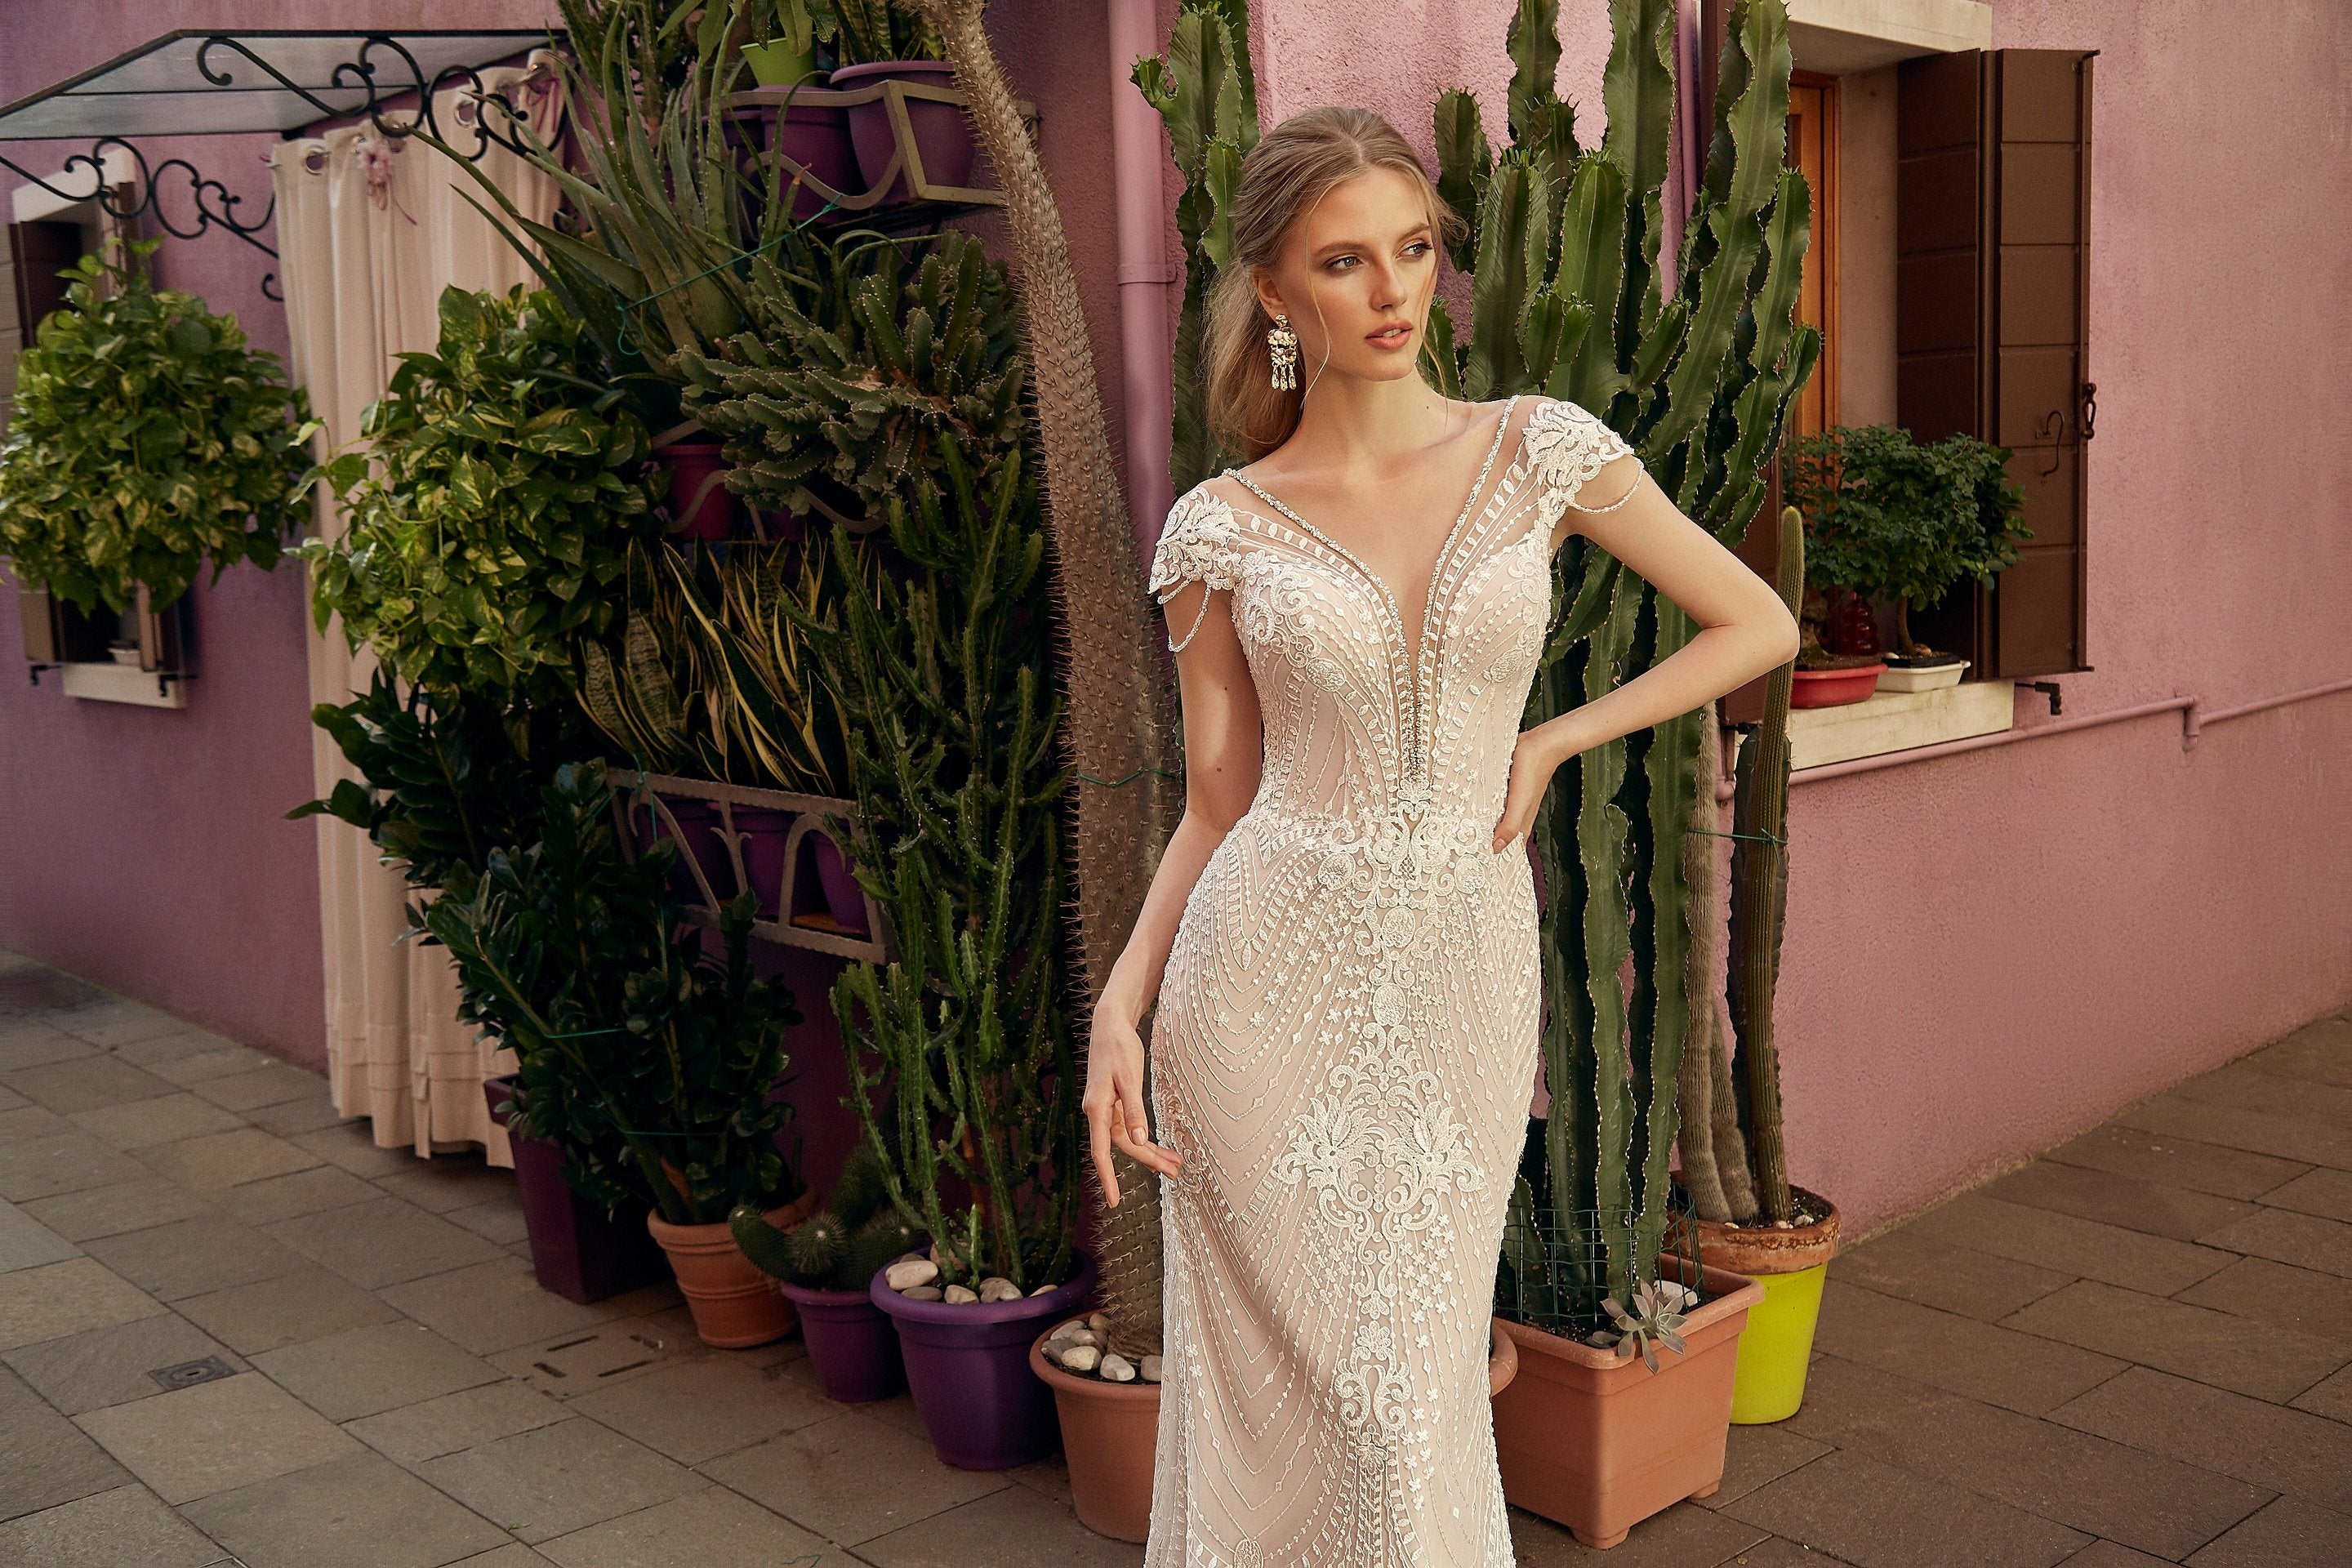 Nadine, Allover Lace V-Neck Cap Sleeves Embroidered Sheath Wedding Dress with Scalloped Lace Edge Train and Illusion Back